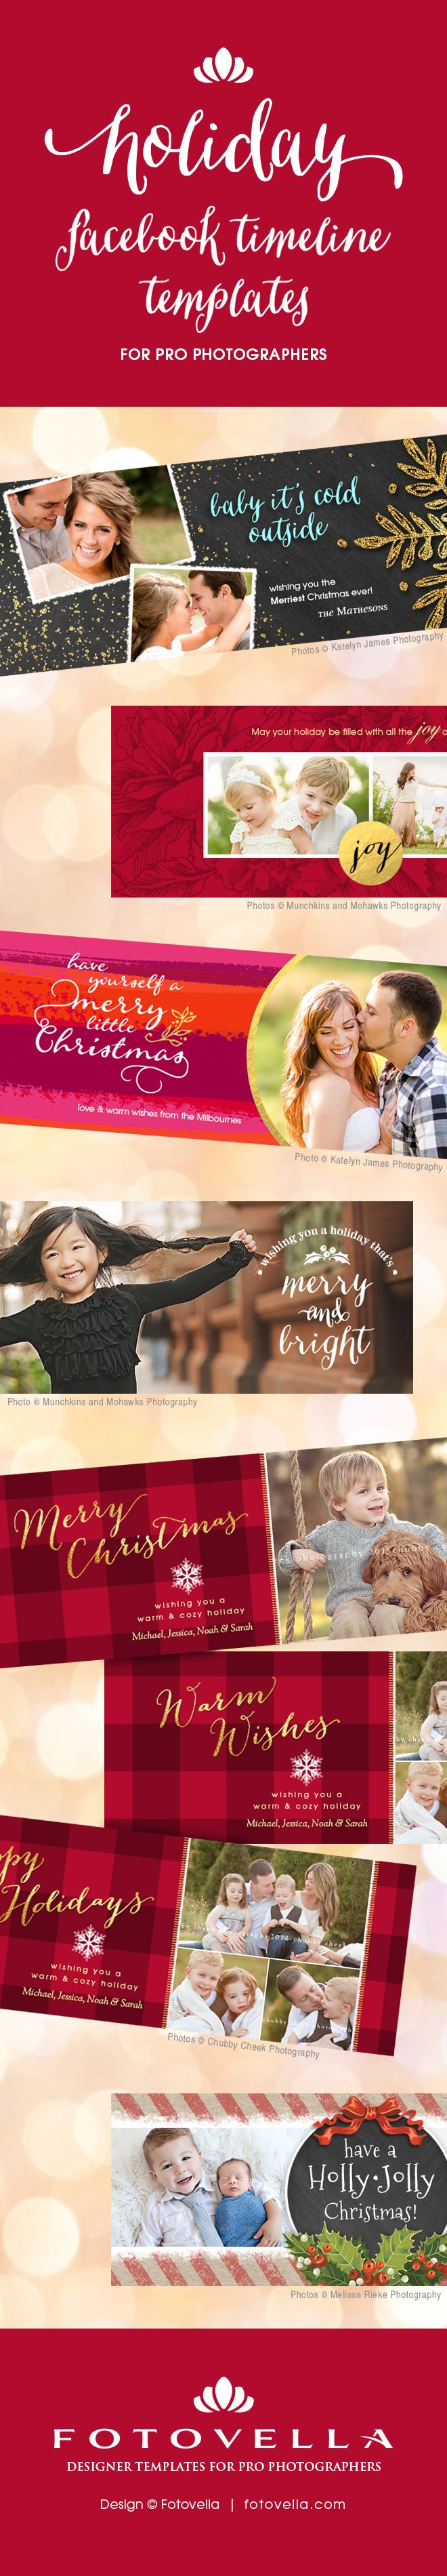 Holiday Facebook timeline cover. Christmas Facebook timeline cover template. Photographer Photoshop templates. #photographytemplates #photoshoptemplates